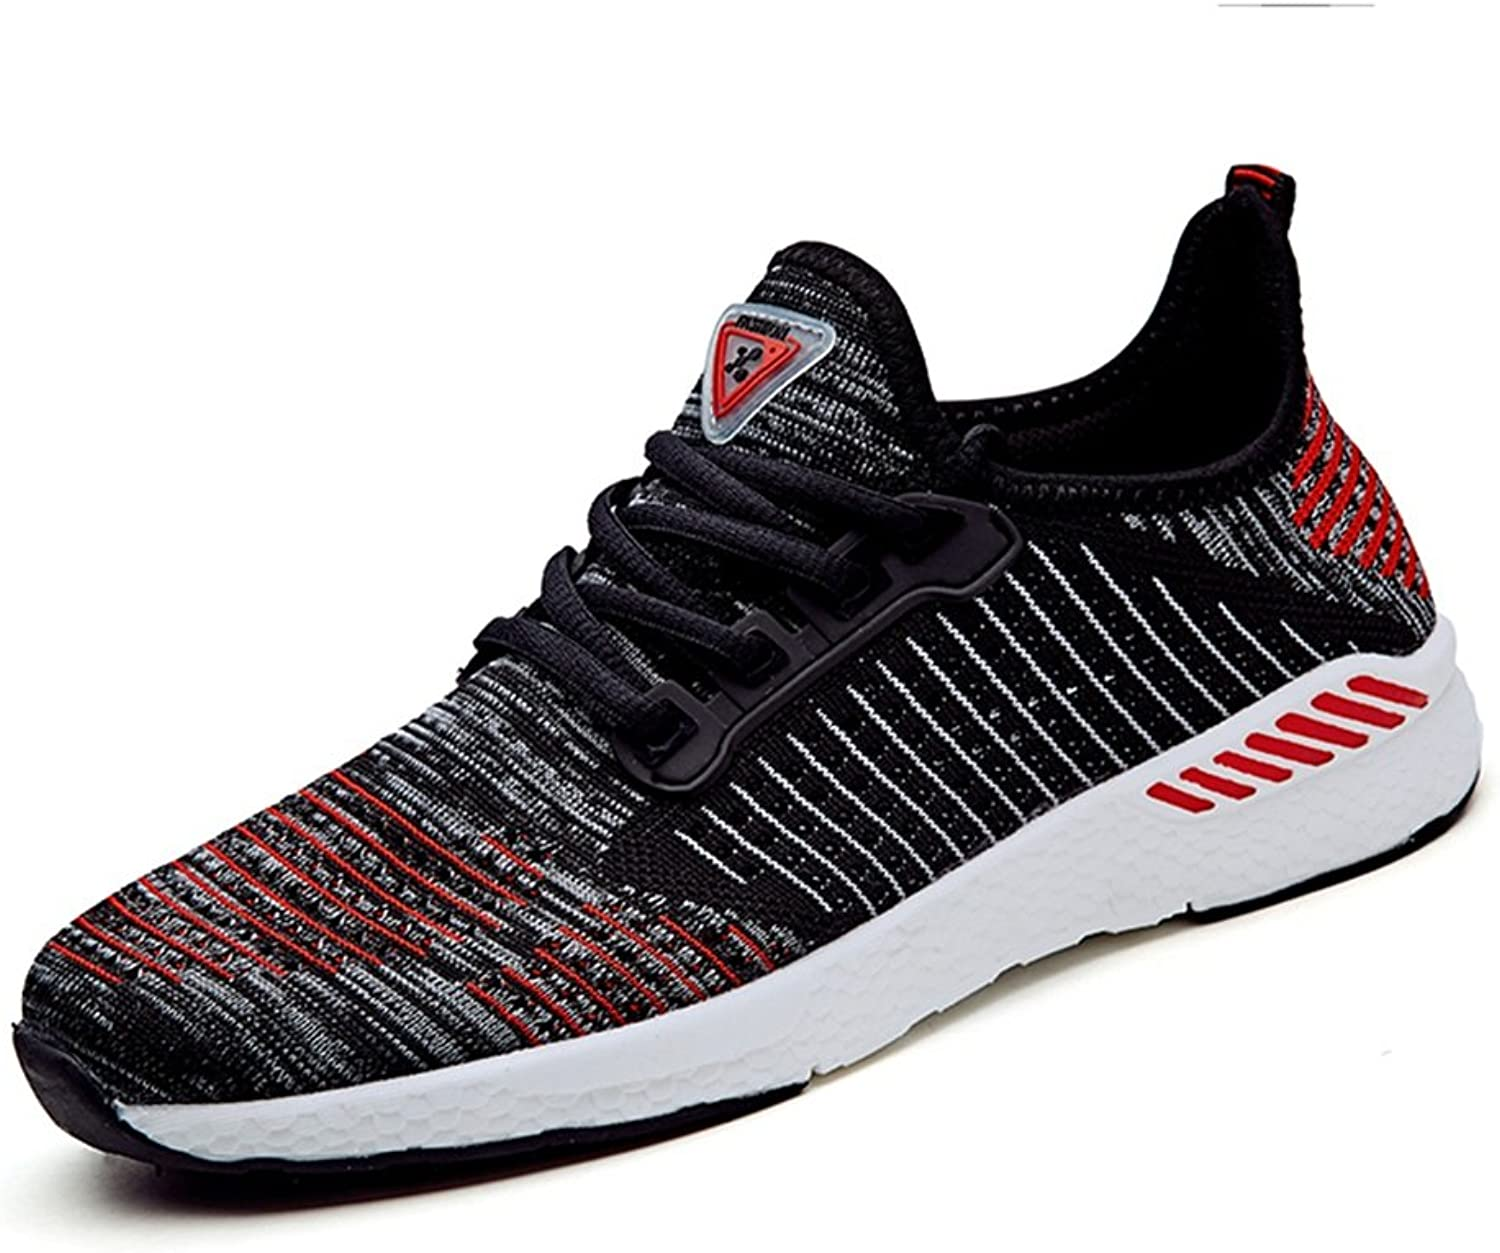 MUMUWU Women And Men's Flat Heel Lace Up Mesh Fabric Vamp Fashionable Athletic shoes Up To Size 10.5MUS Sport shoes